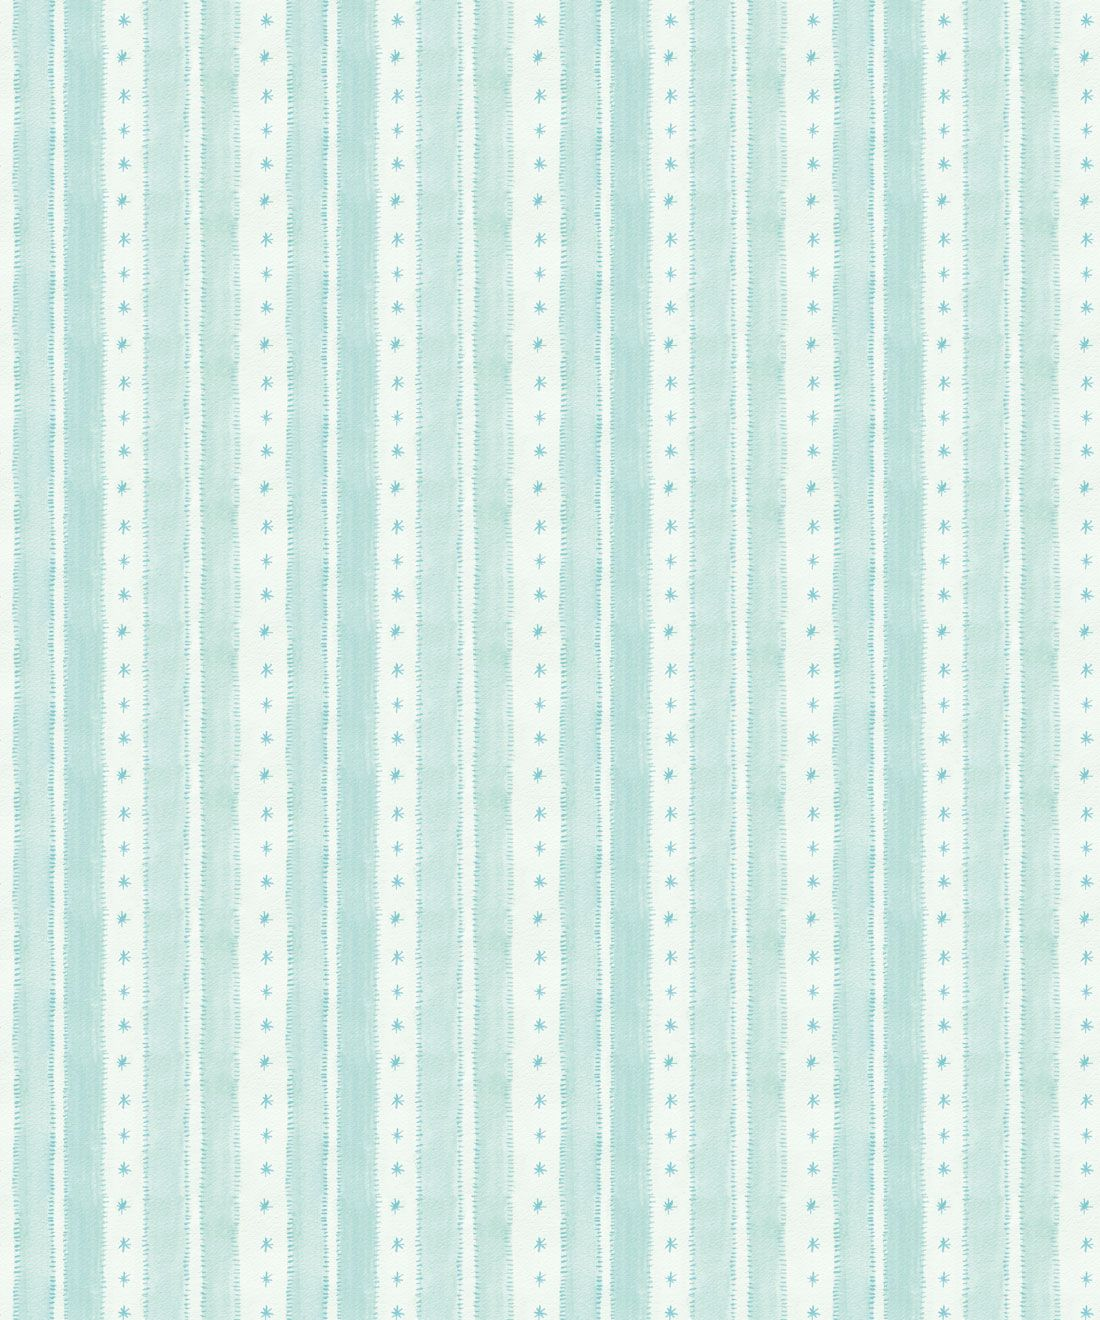 Star Stripe Wallpaper • Turquoise • Swatch